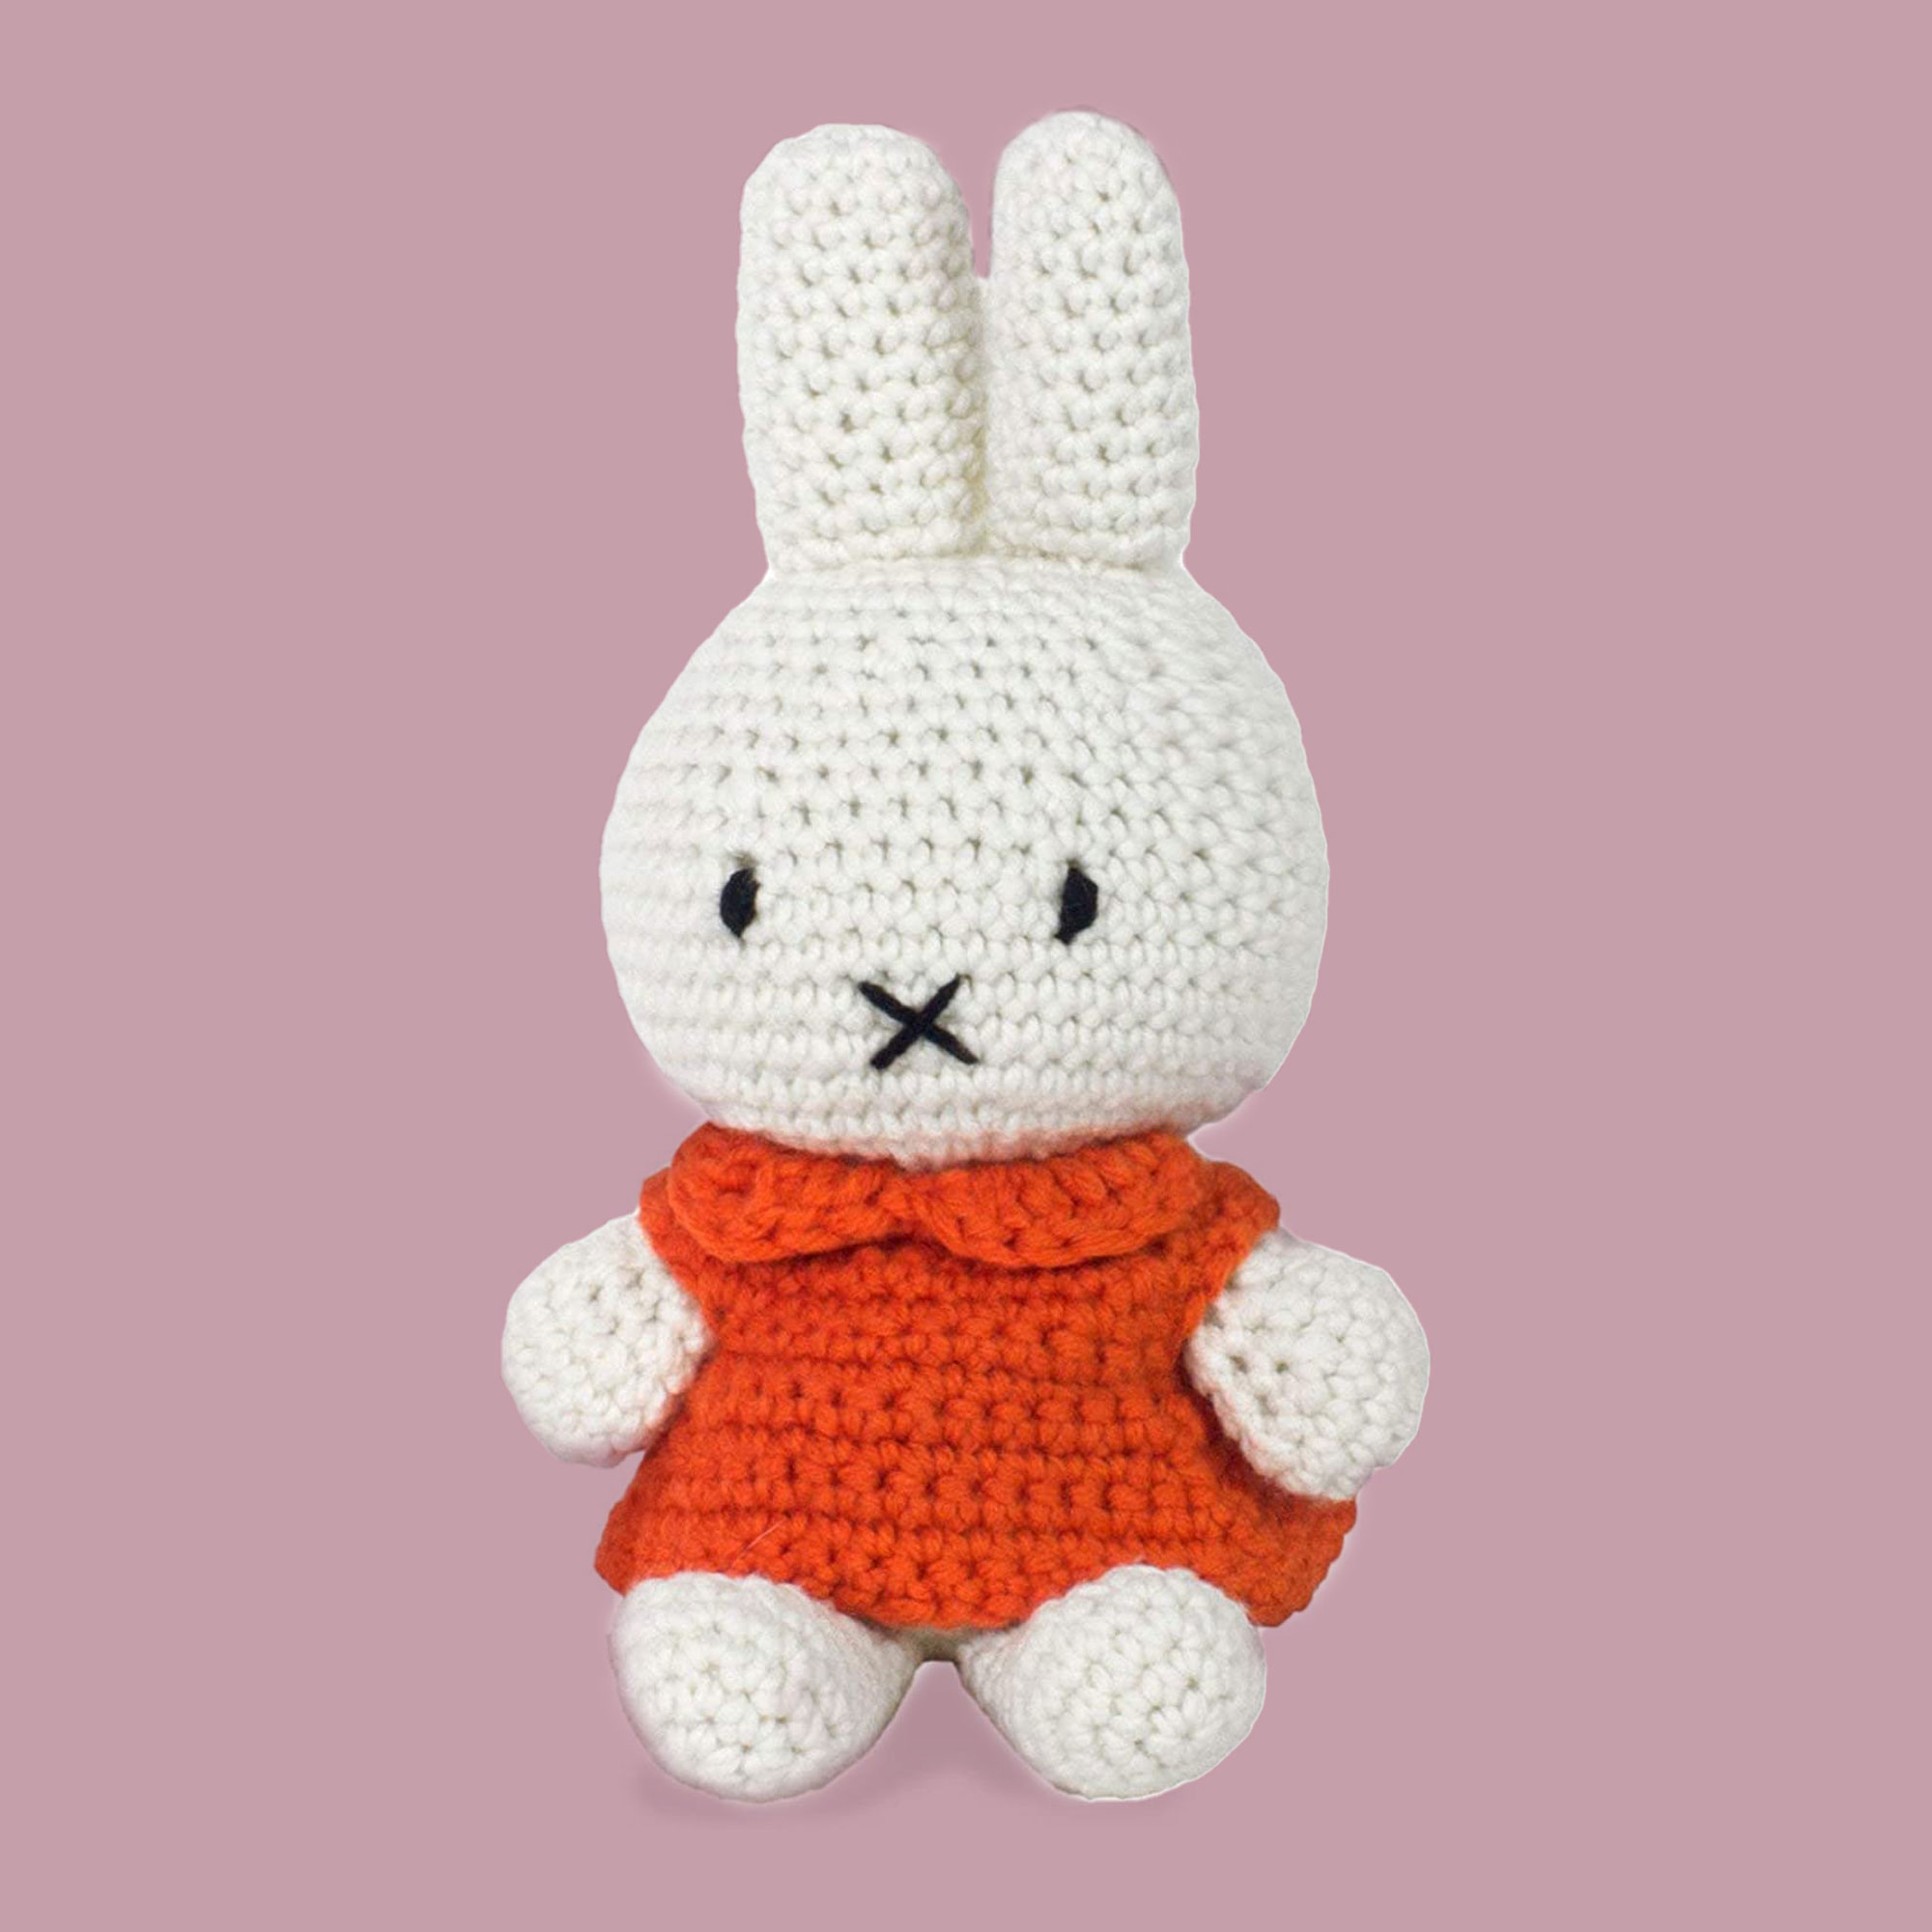 crocheted toy bunny